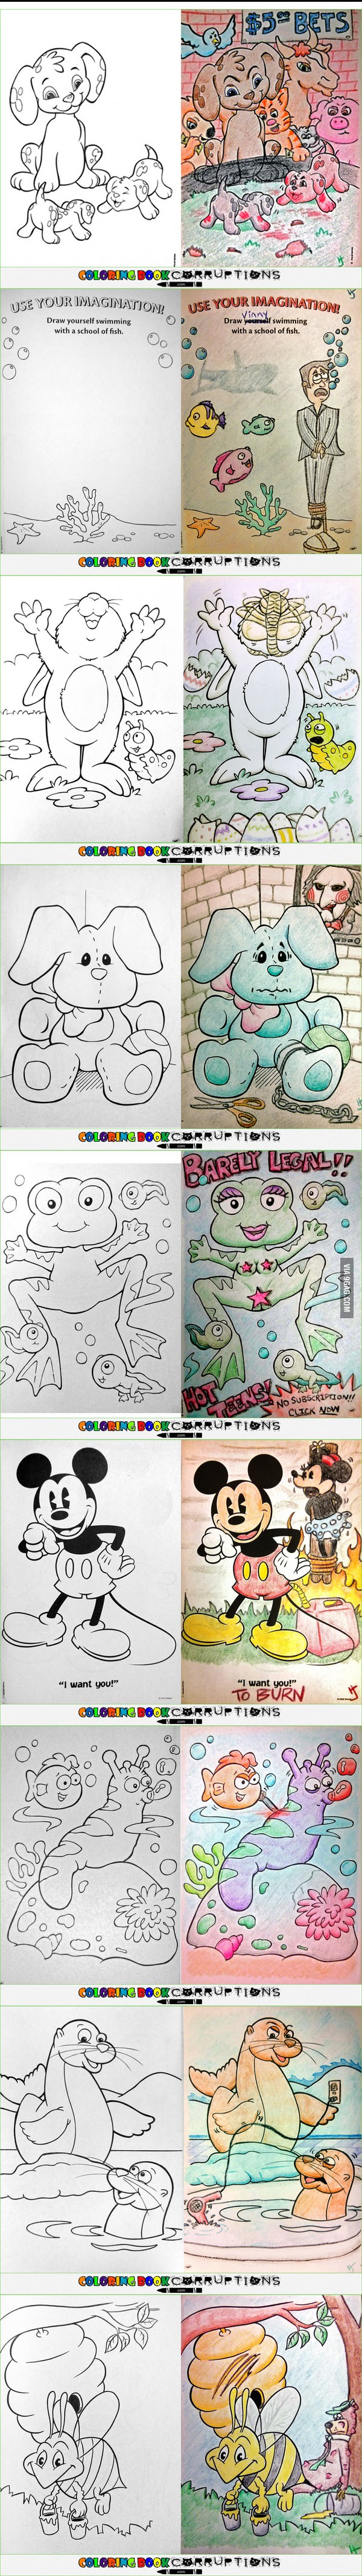 Coloring Book Corruptions Corrupt Coloring Book Coloring Books Best Funny Pictures